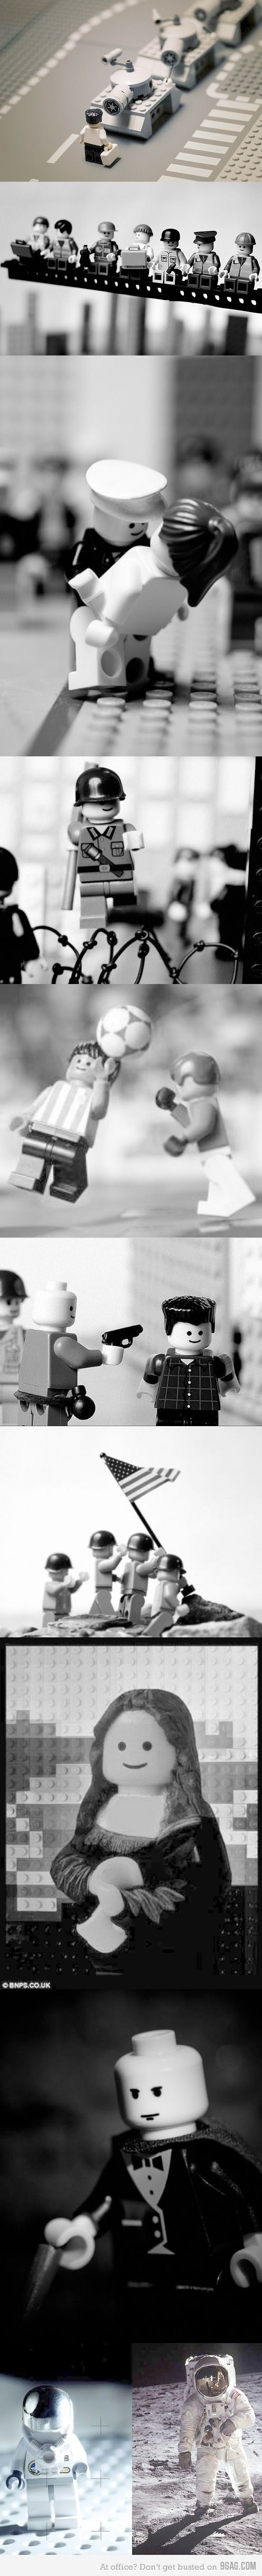 Famous photos recreated in Lego